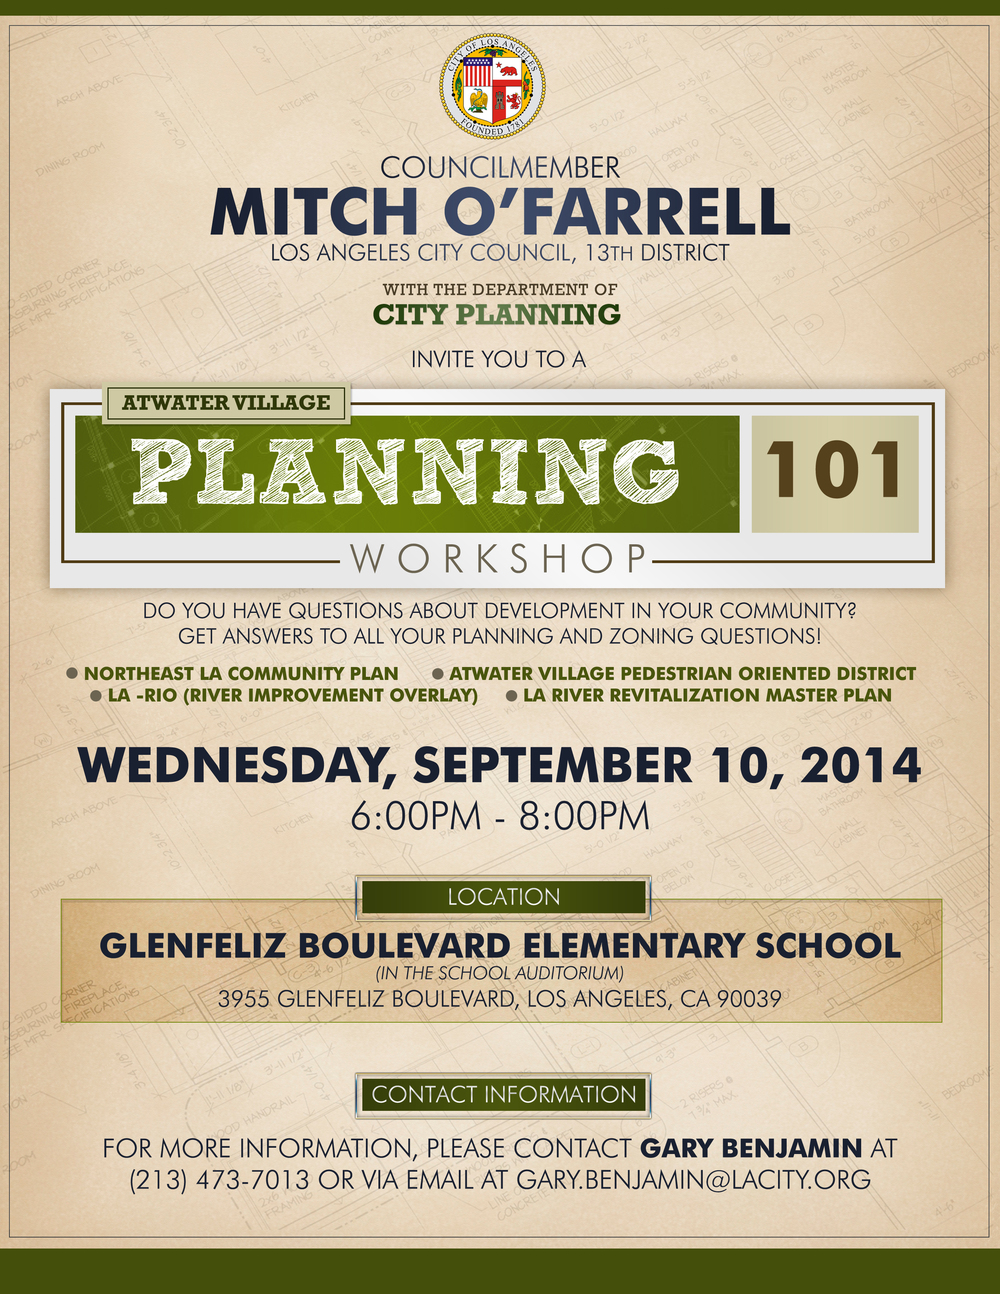 Atwater Village Planning 101 Workshop.jpg